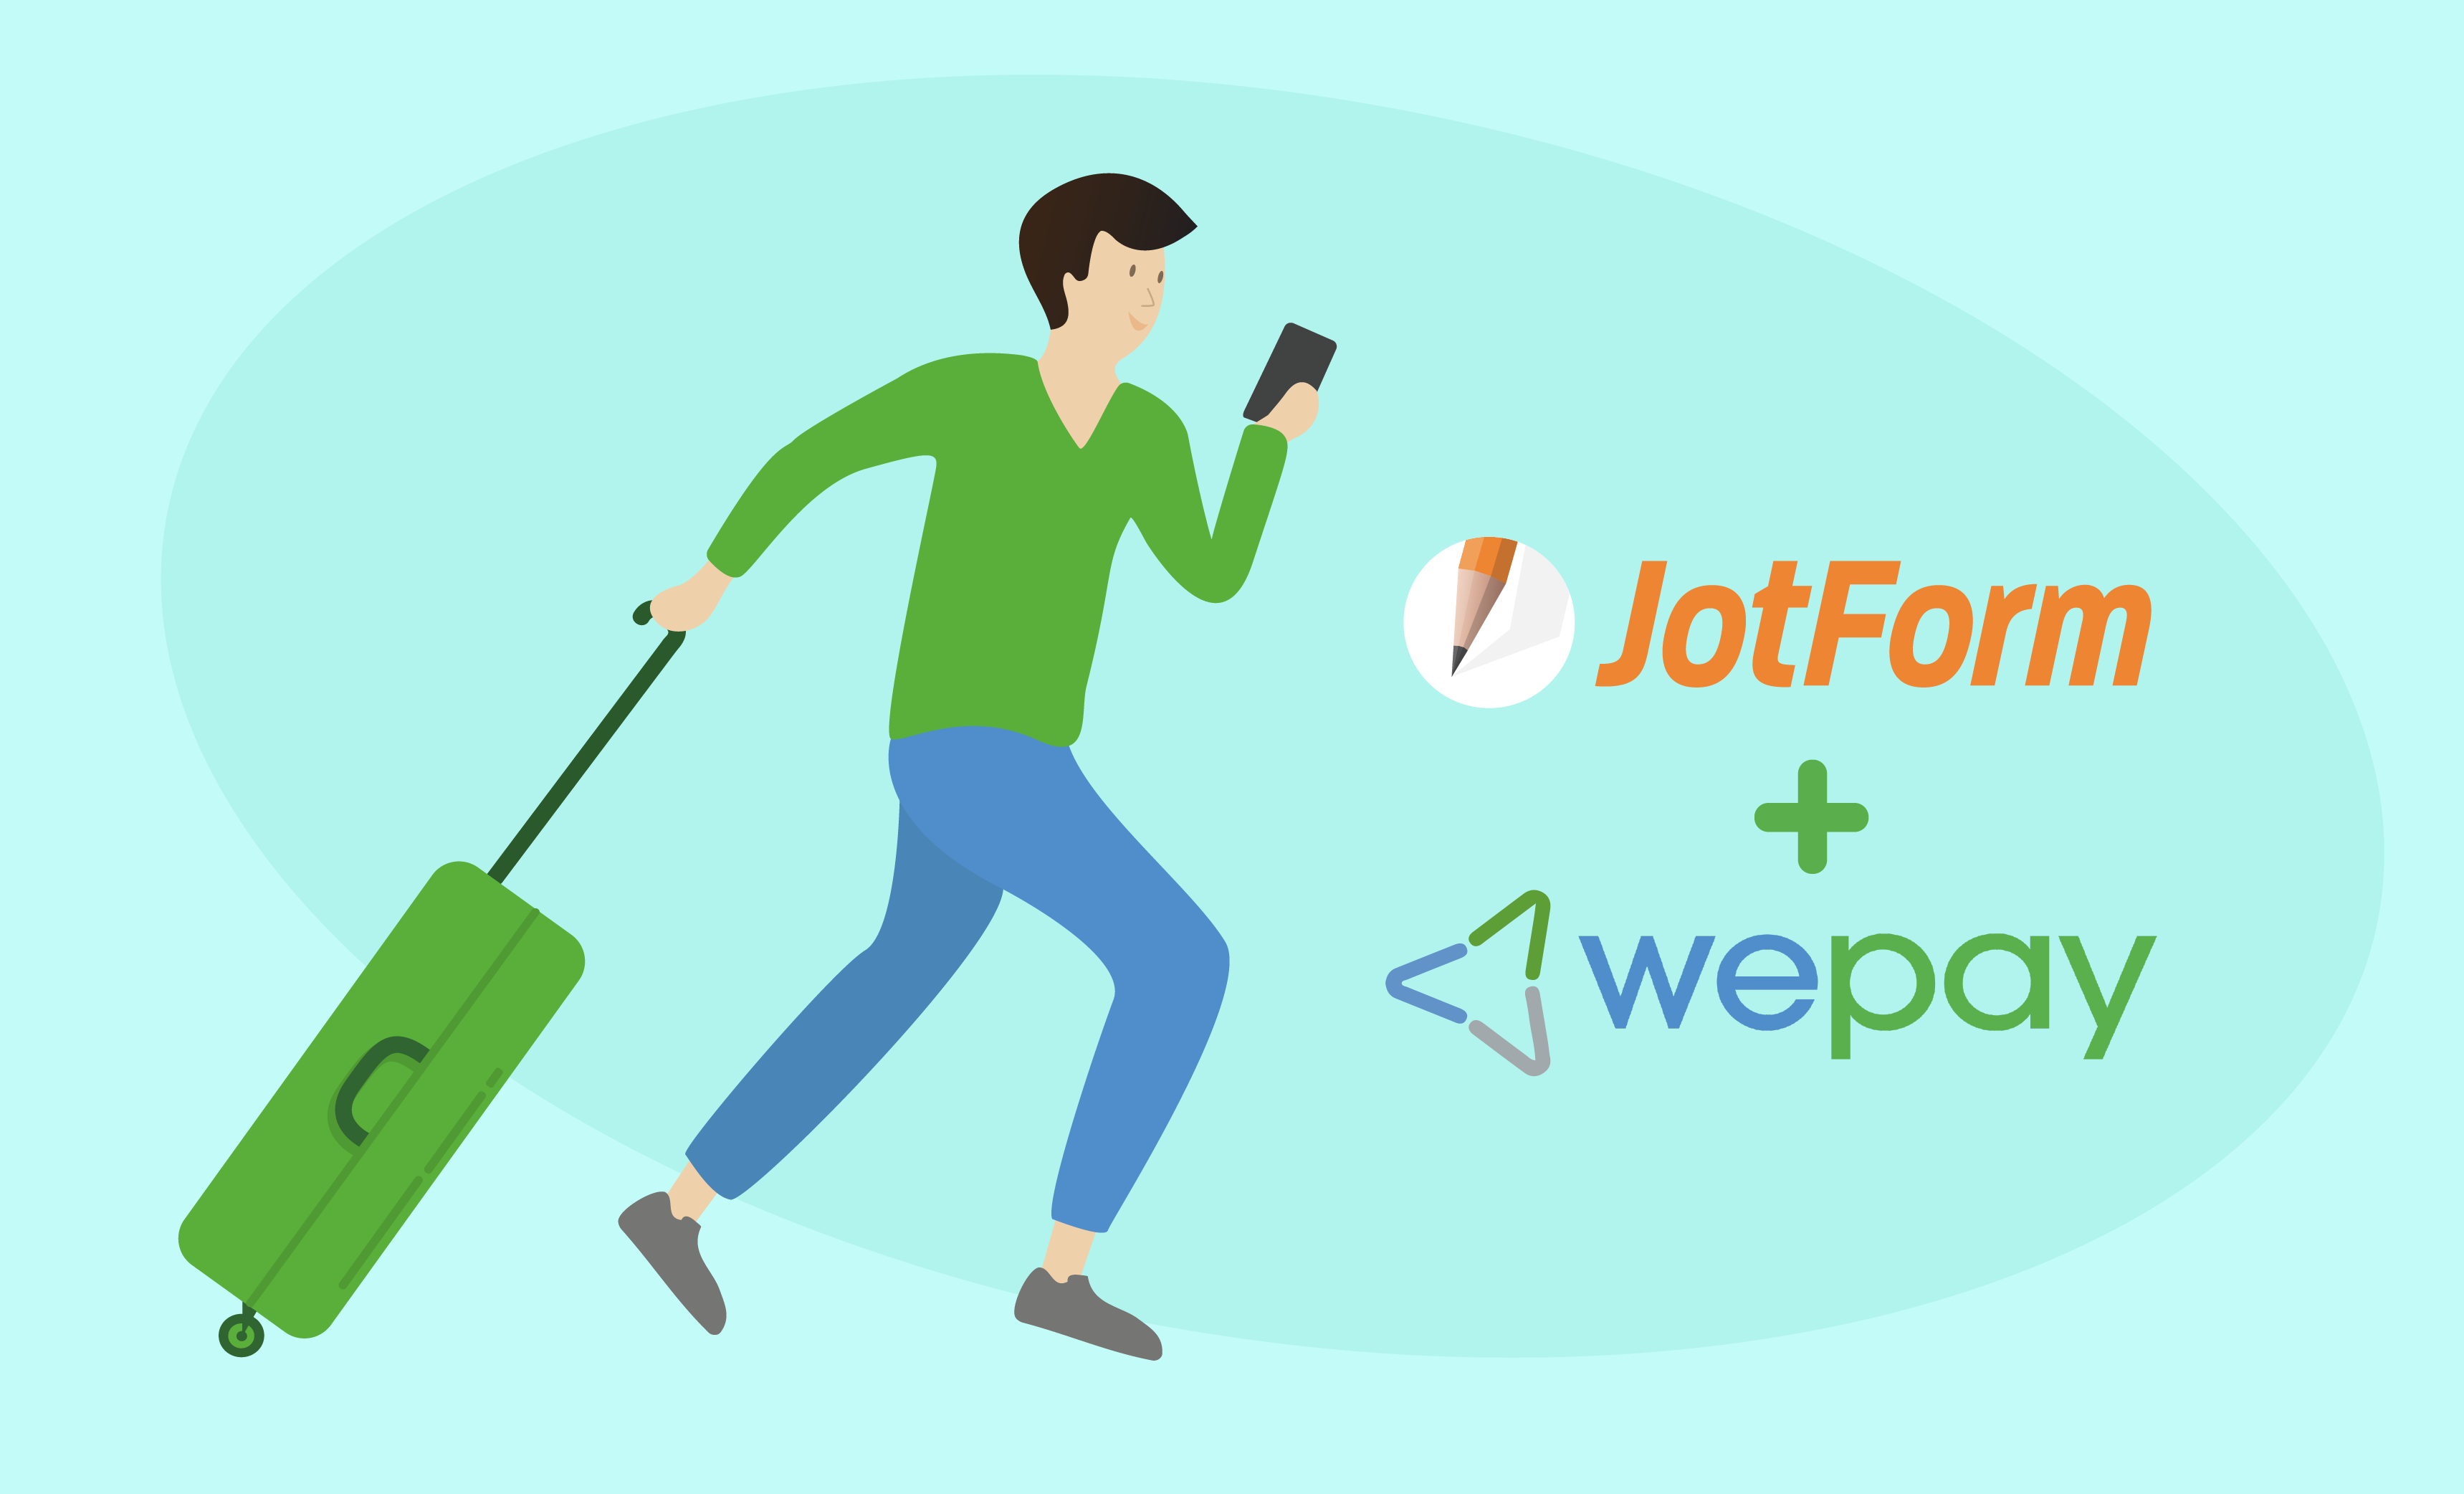 New Integration: Create Payment Forms with WePay and JotForm